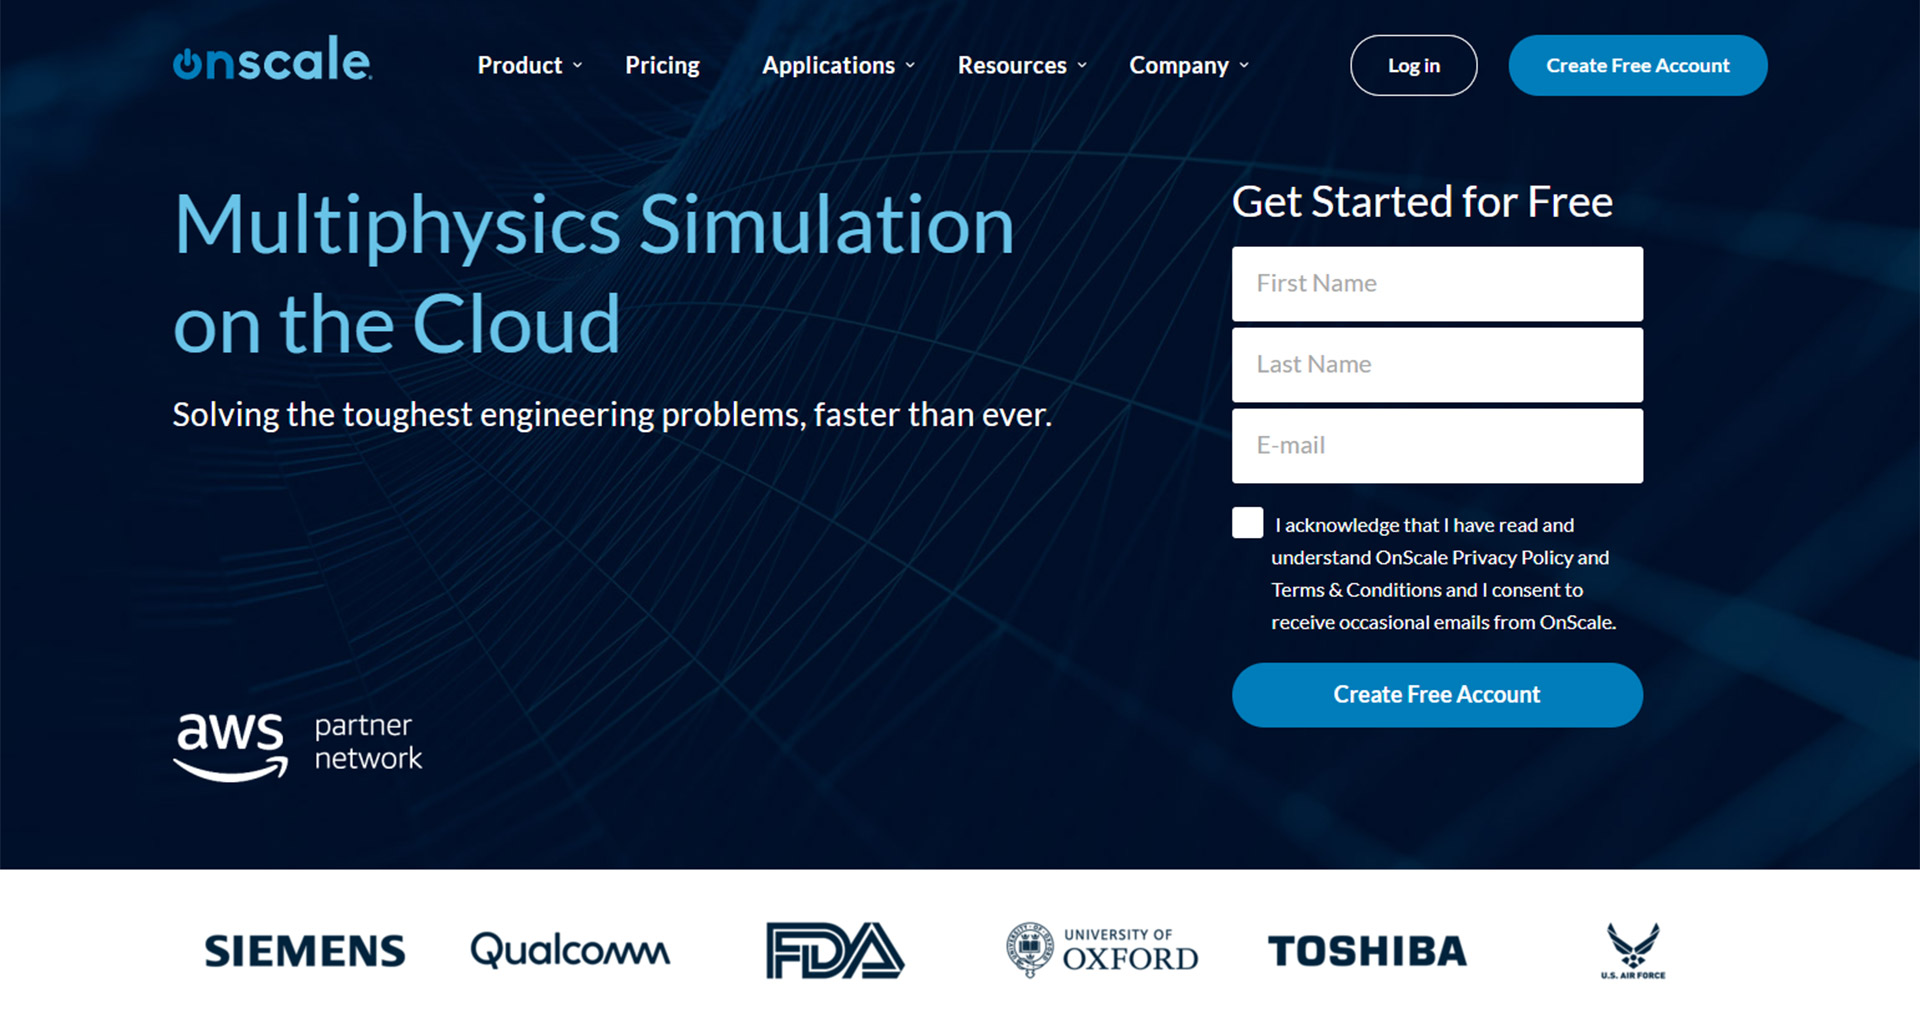 OnScale | Multiphysics FEA, CAE Simulation Software in the Cloud